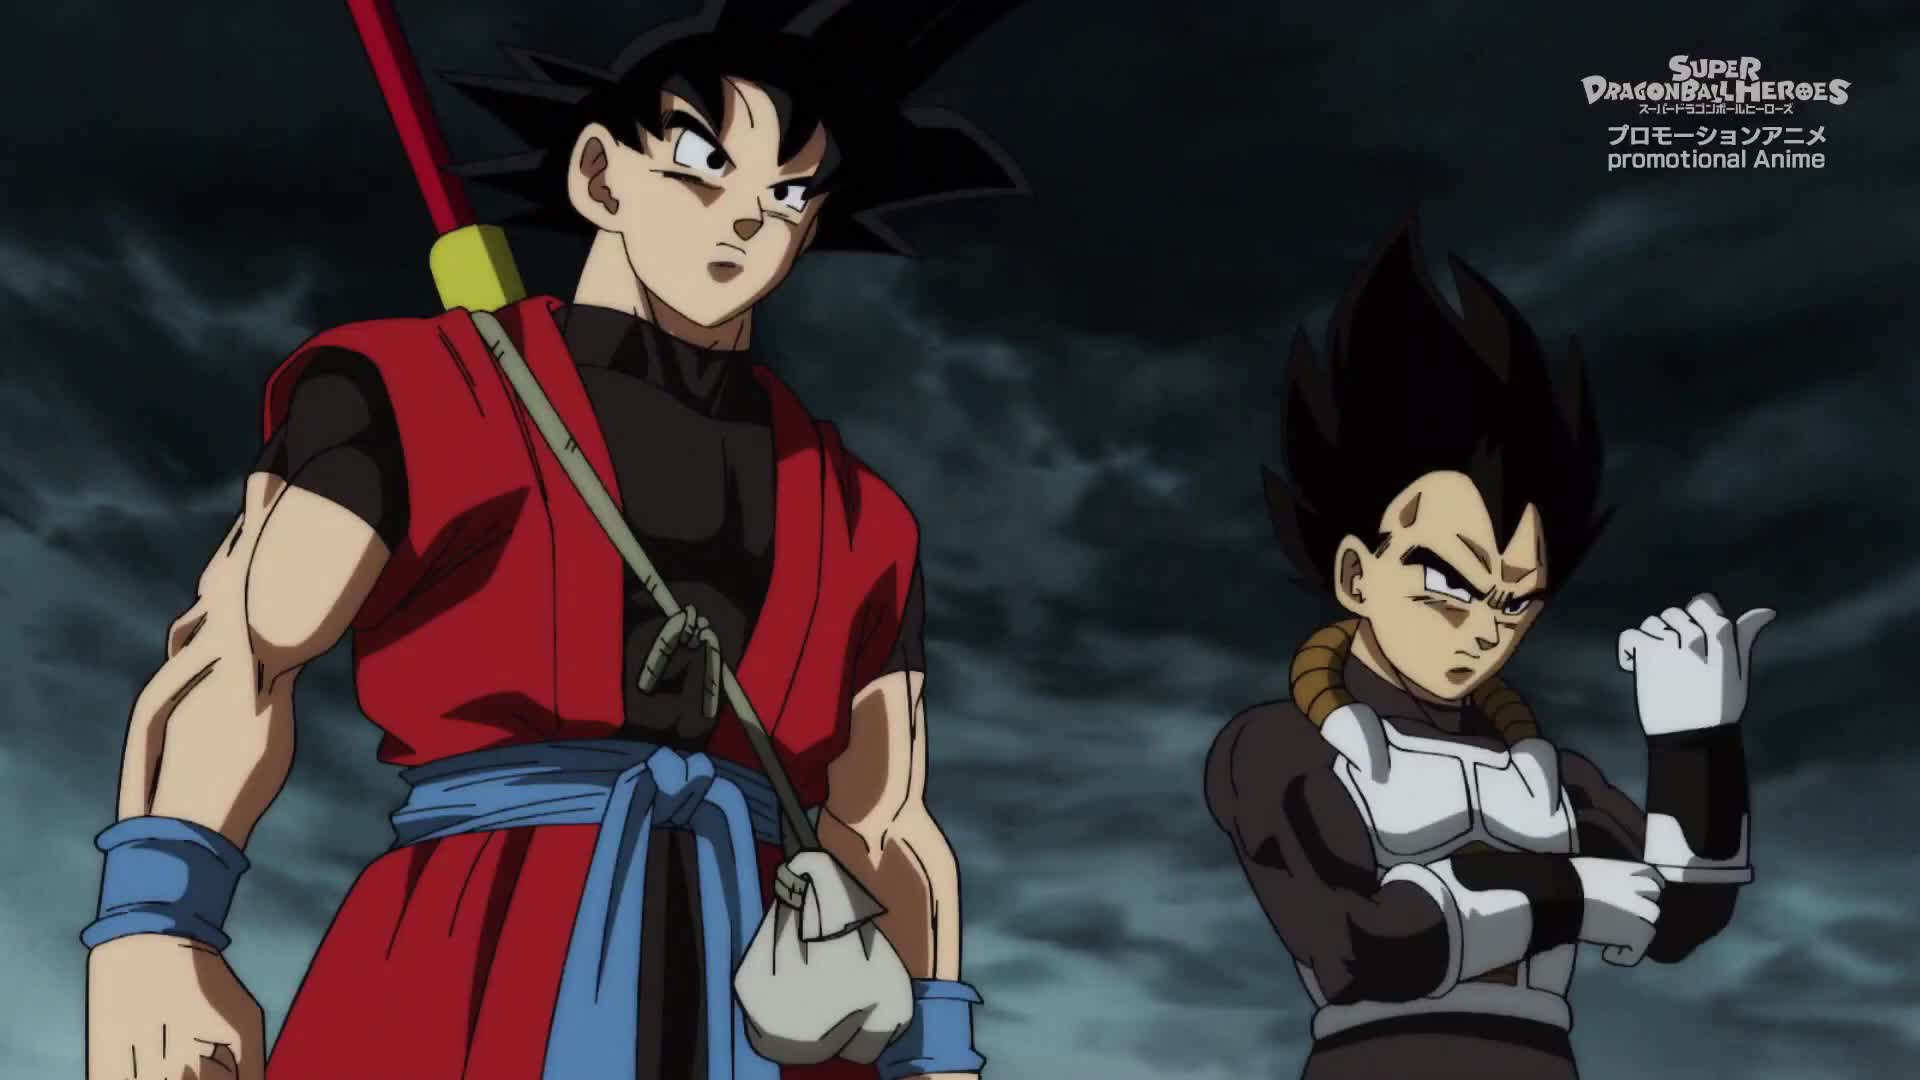 y2mate.com - Super Dragon Ball Heroes Big Bang Mission Episode 2 (HD 1080p)_5uMHX78A0hU_1080p_...jpg